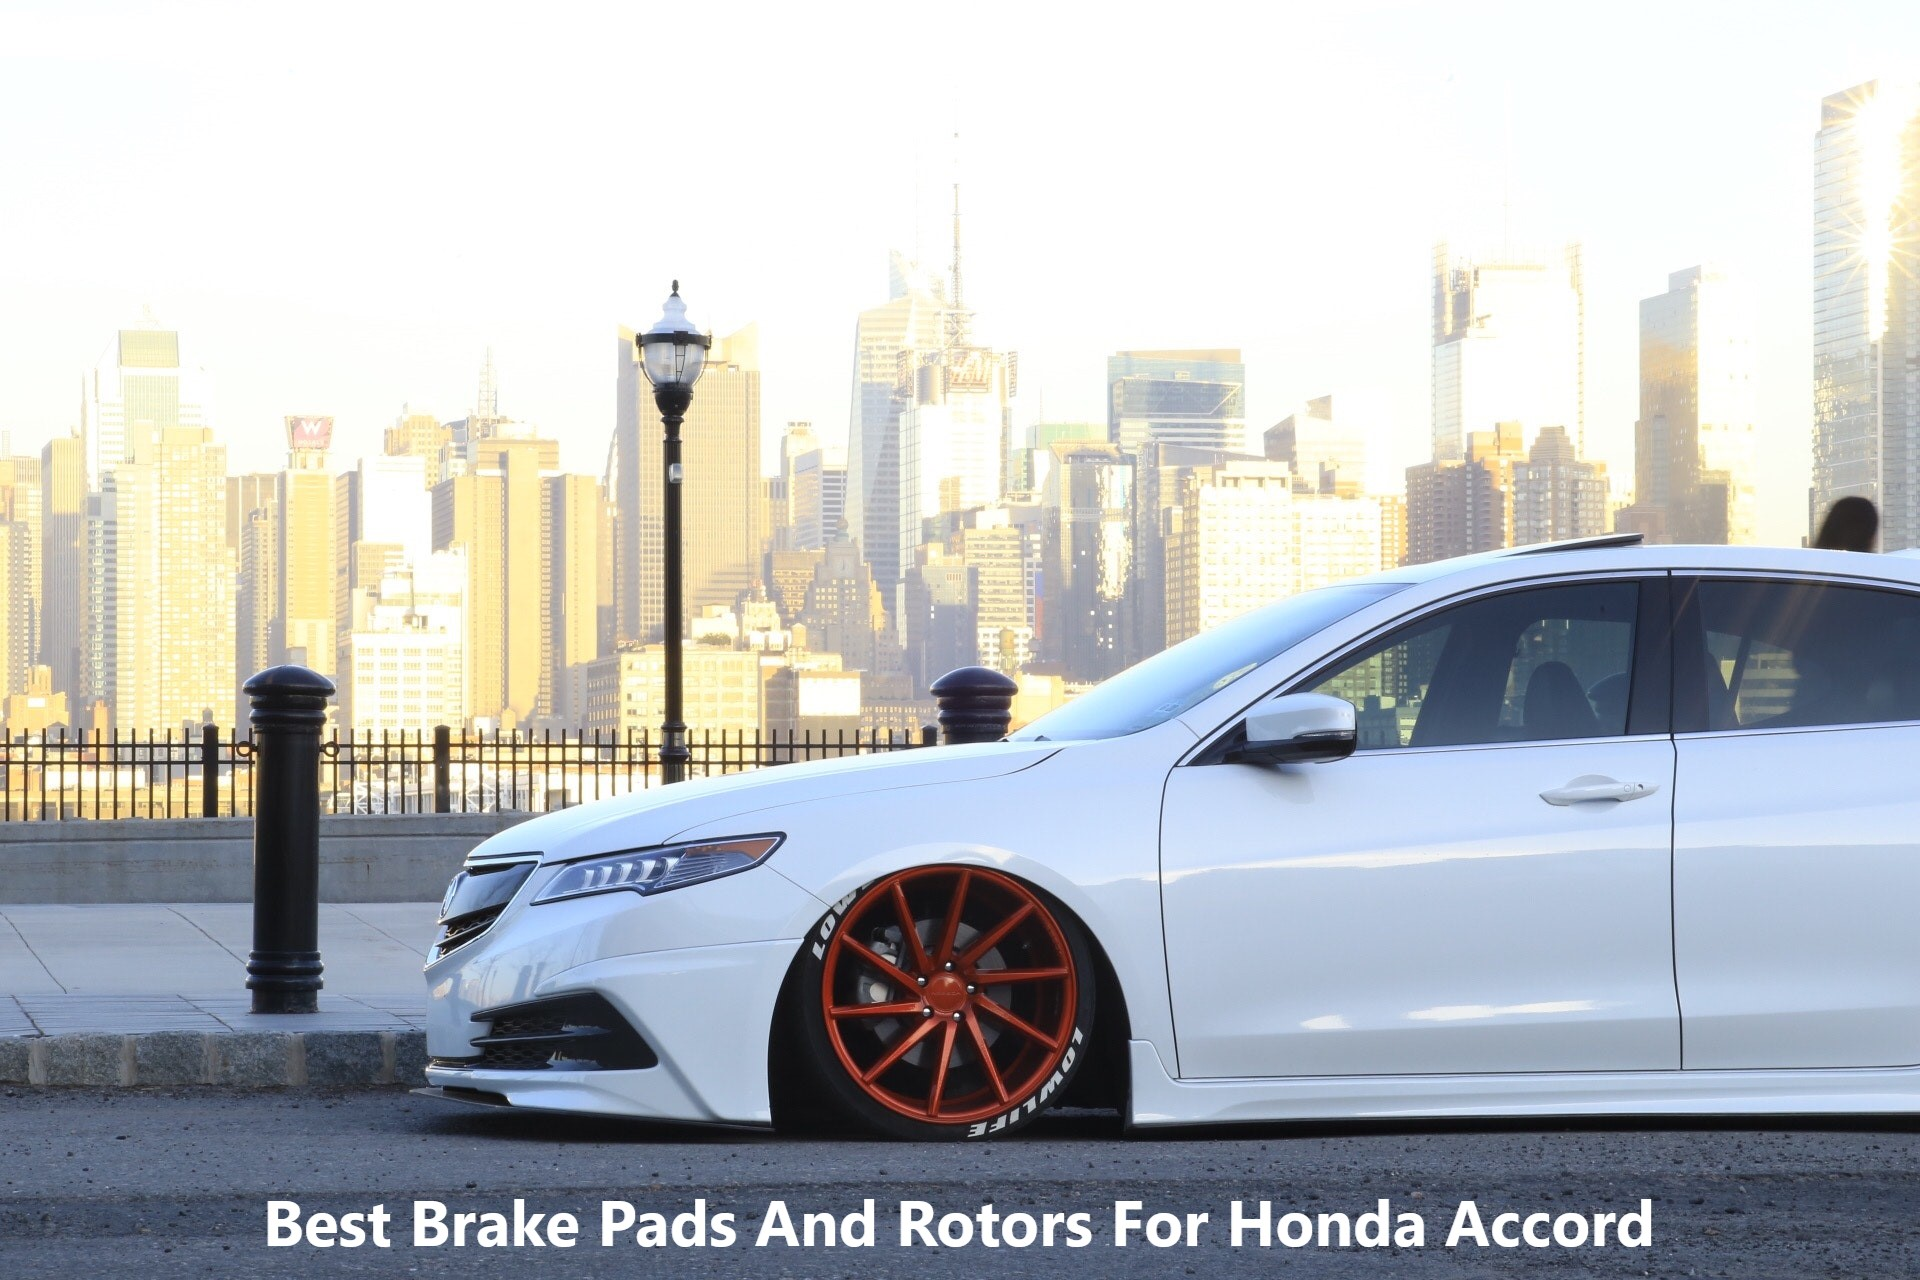 Best Brake Pads For Honda Accord